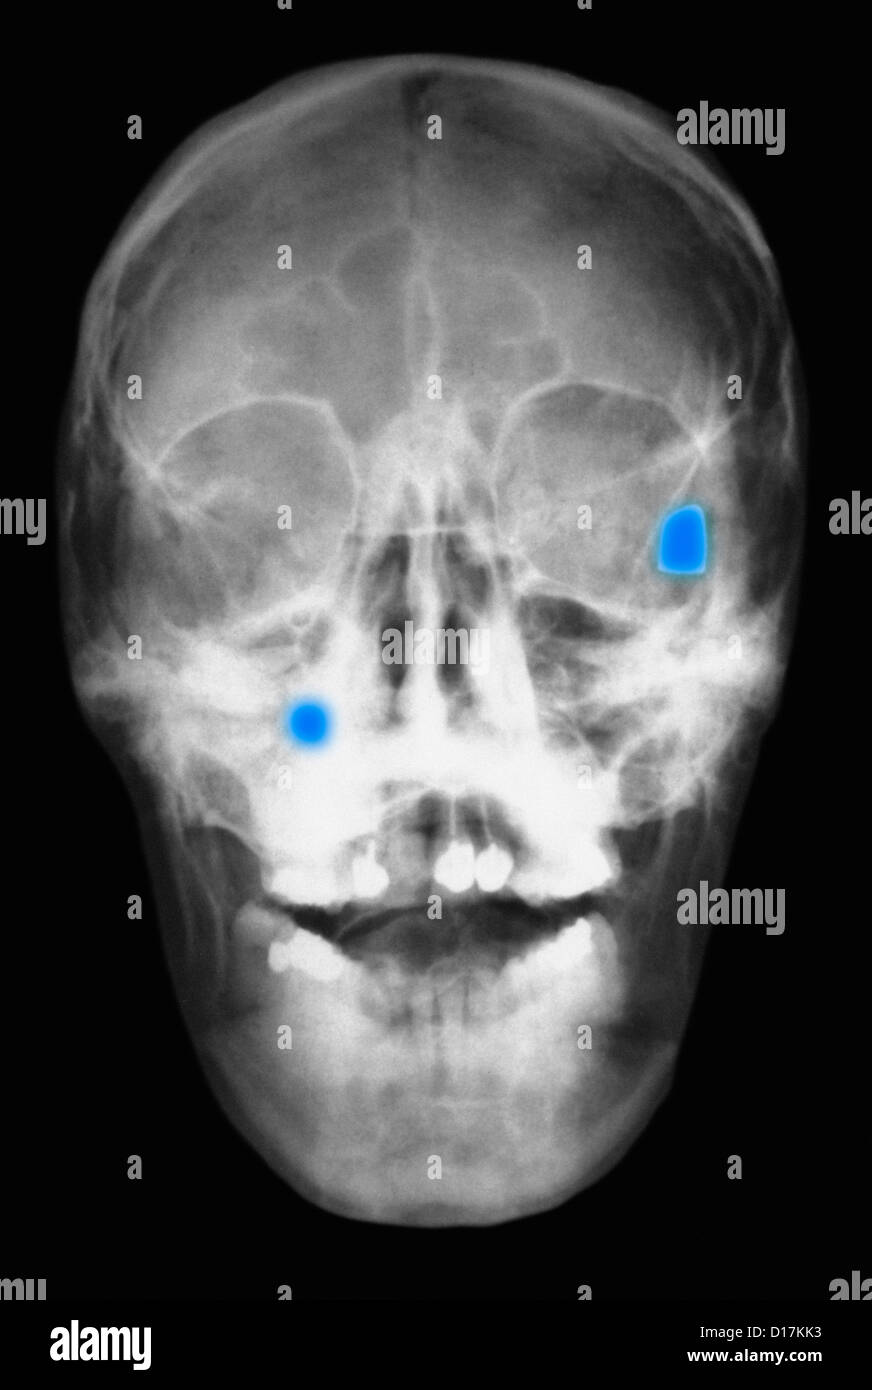 X-ray of head showing two bullets in the skull - Stock Image